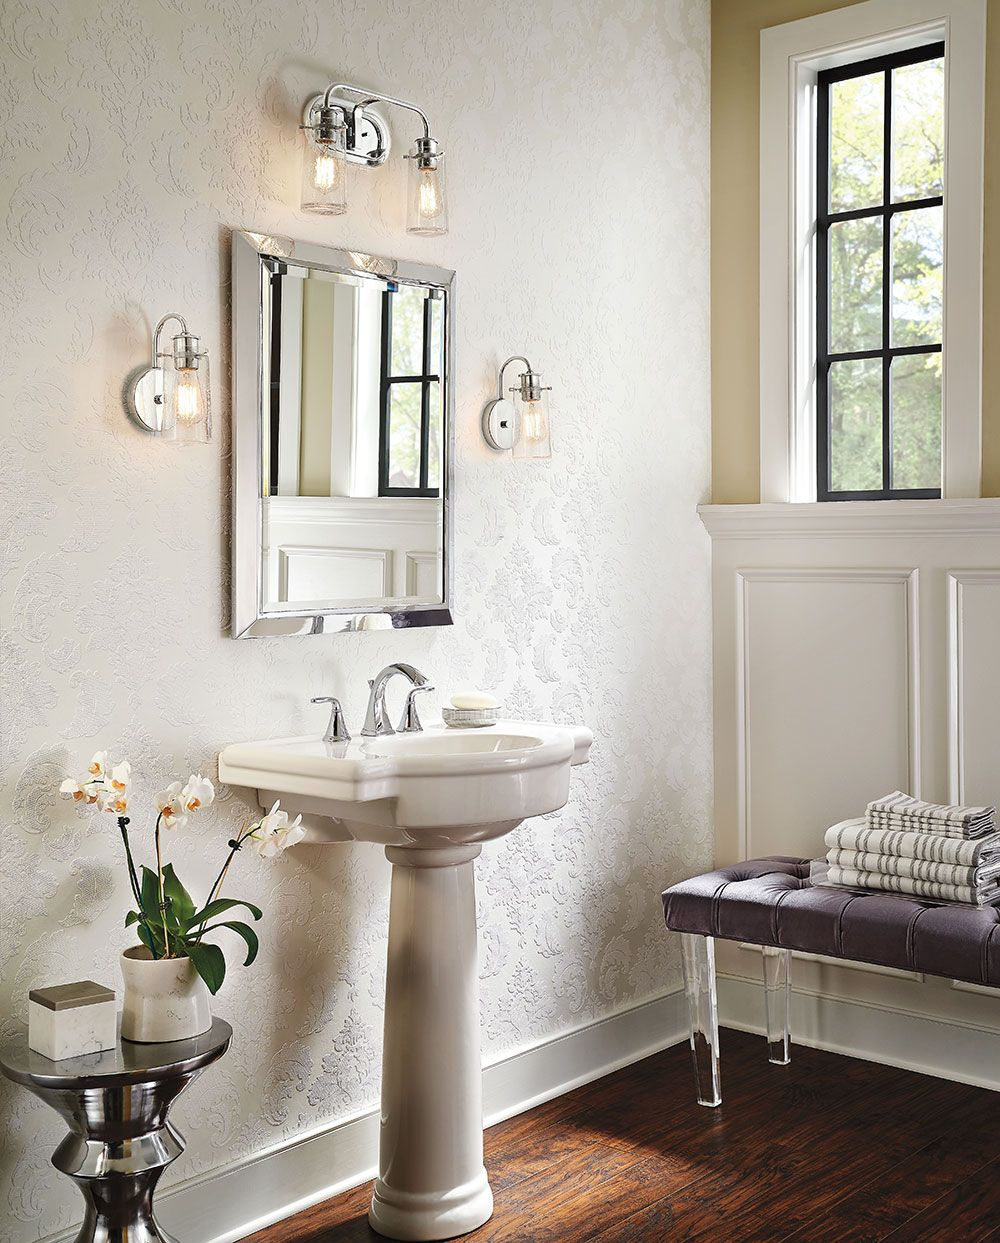 There 39 s so much to love about the reclaimed style of the braelyn wall sconce by kichlerstyle Bathroom sconce lighting ideas